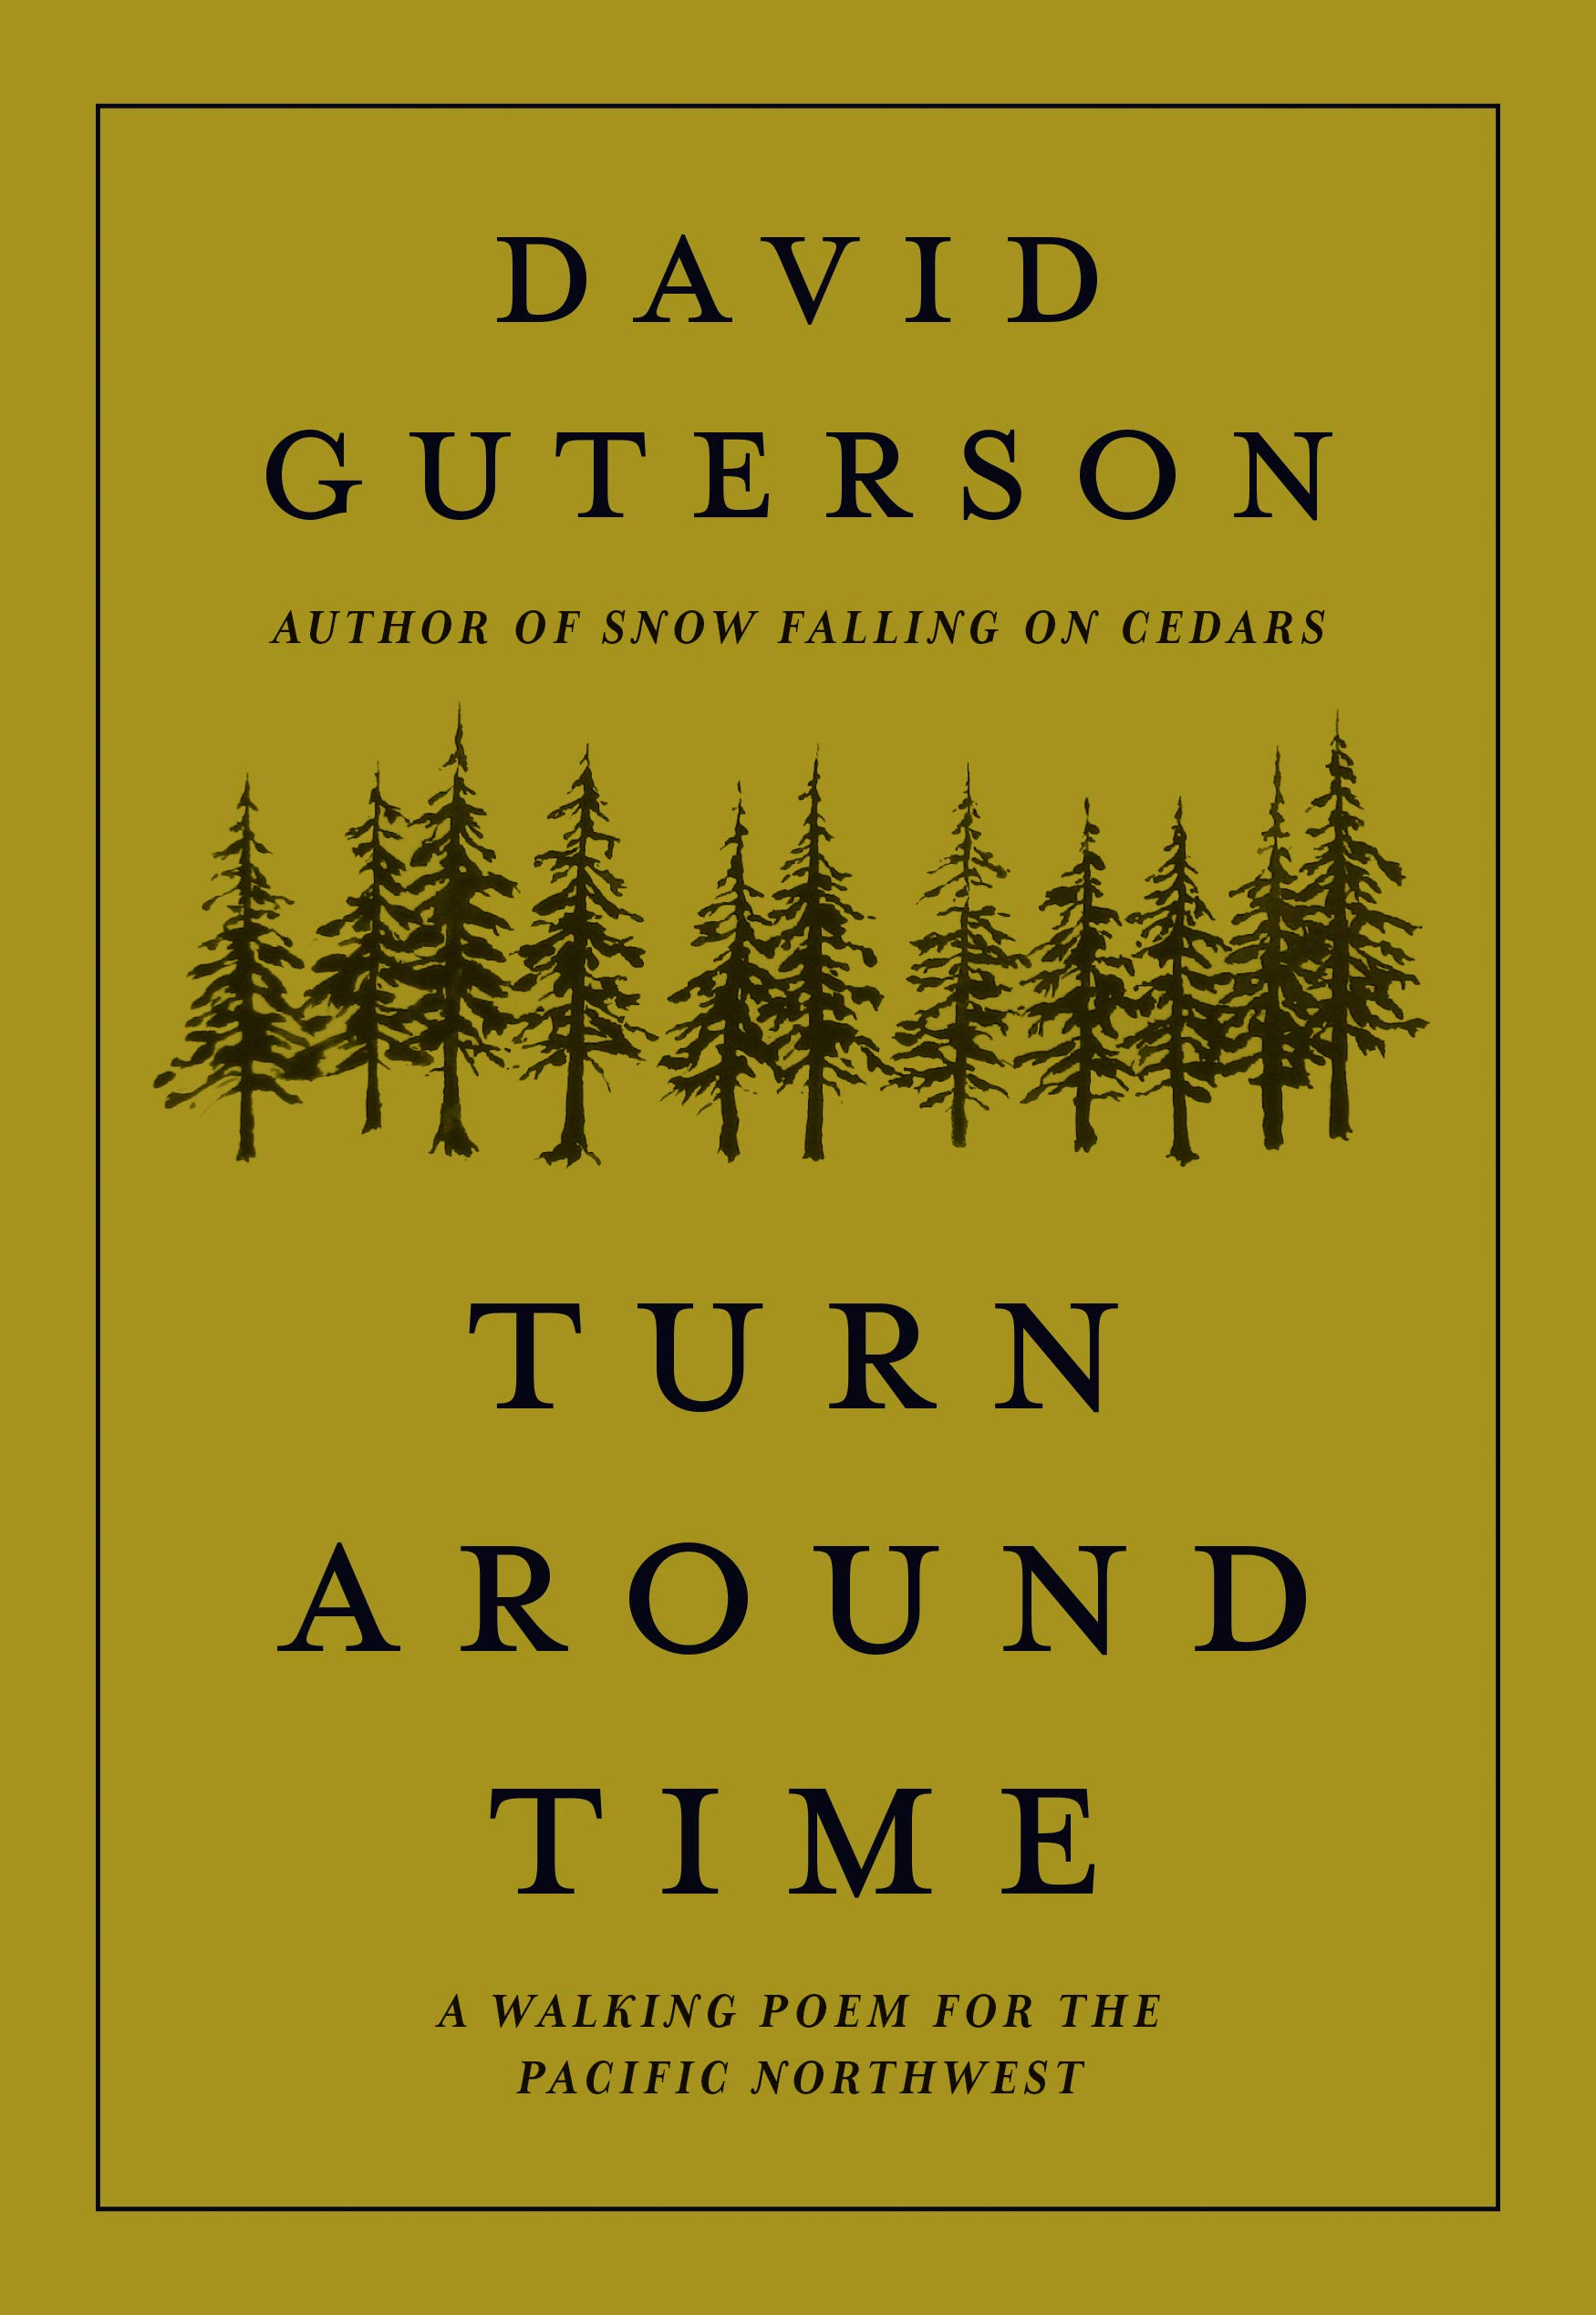 Turn Around Time A Walking Poem For The Pacific Northwest Guterson David Gibbens Justin 9781680512656 Amazon Com Books Short poem about time by marinela reka. turn around time a walking poem for